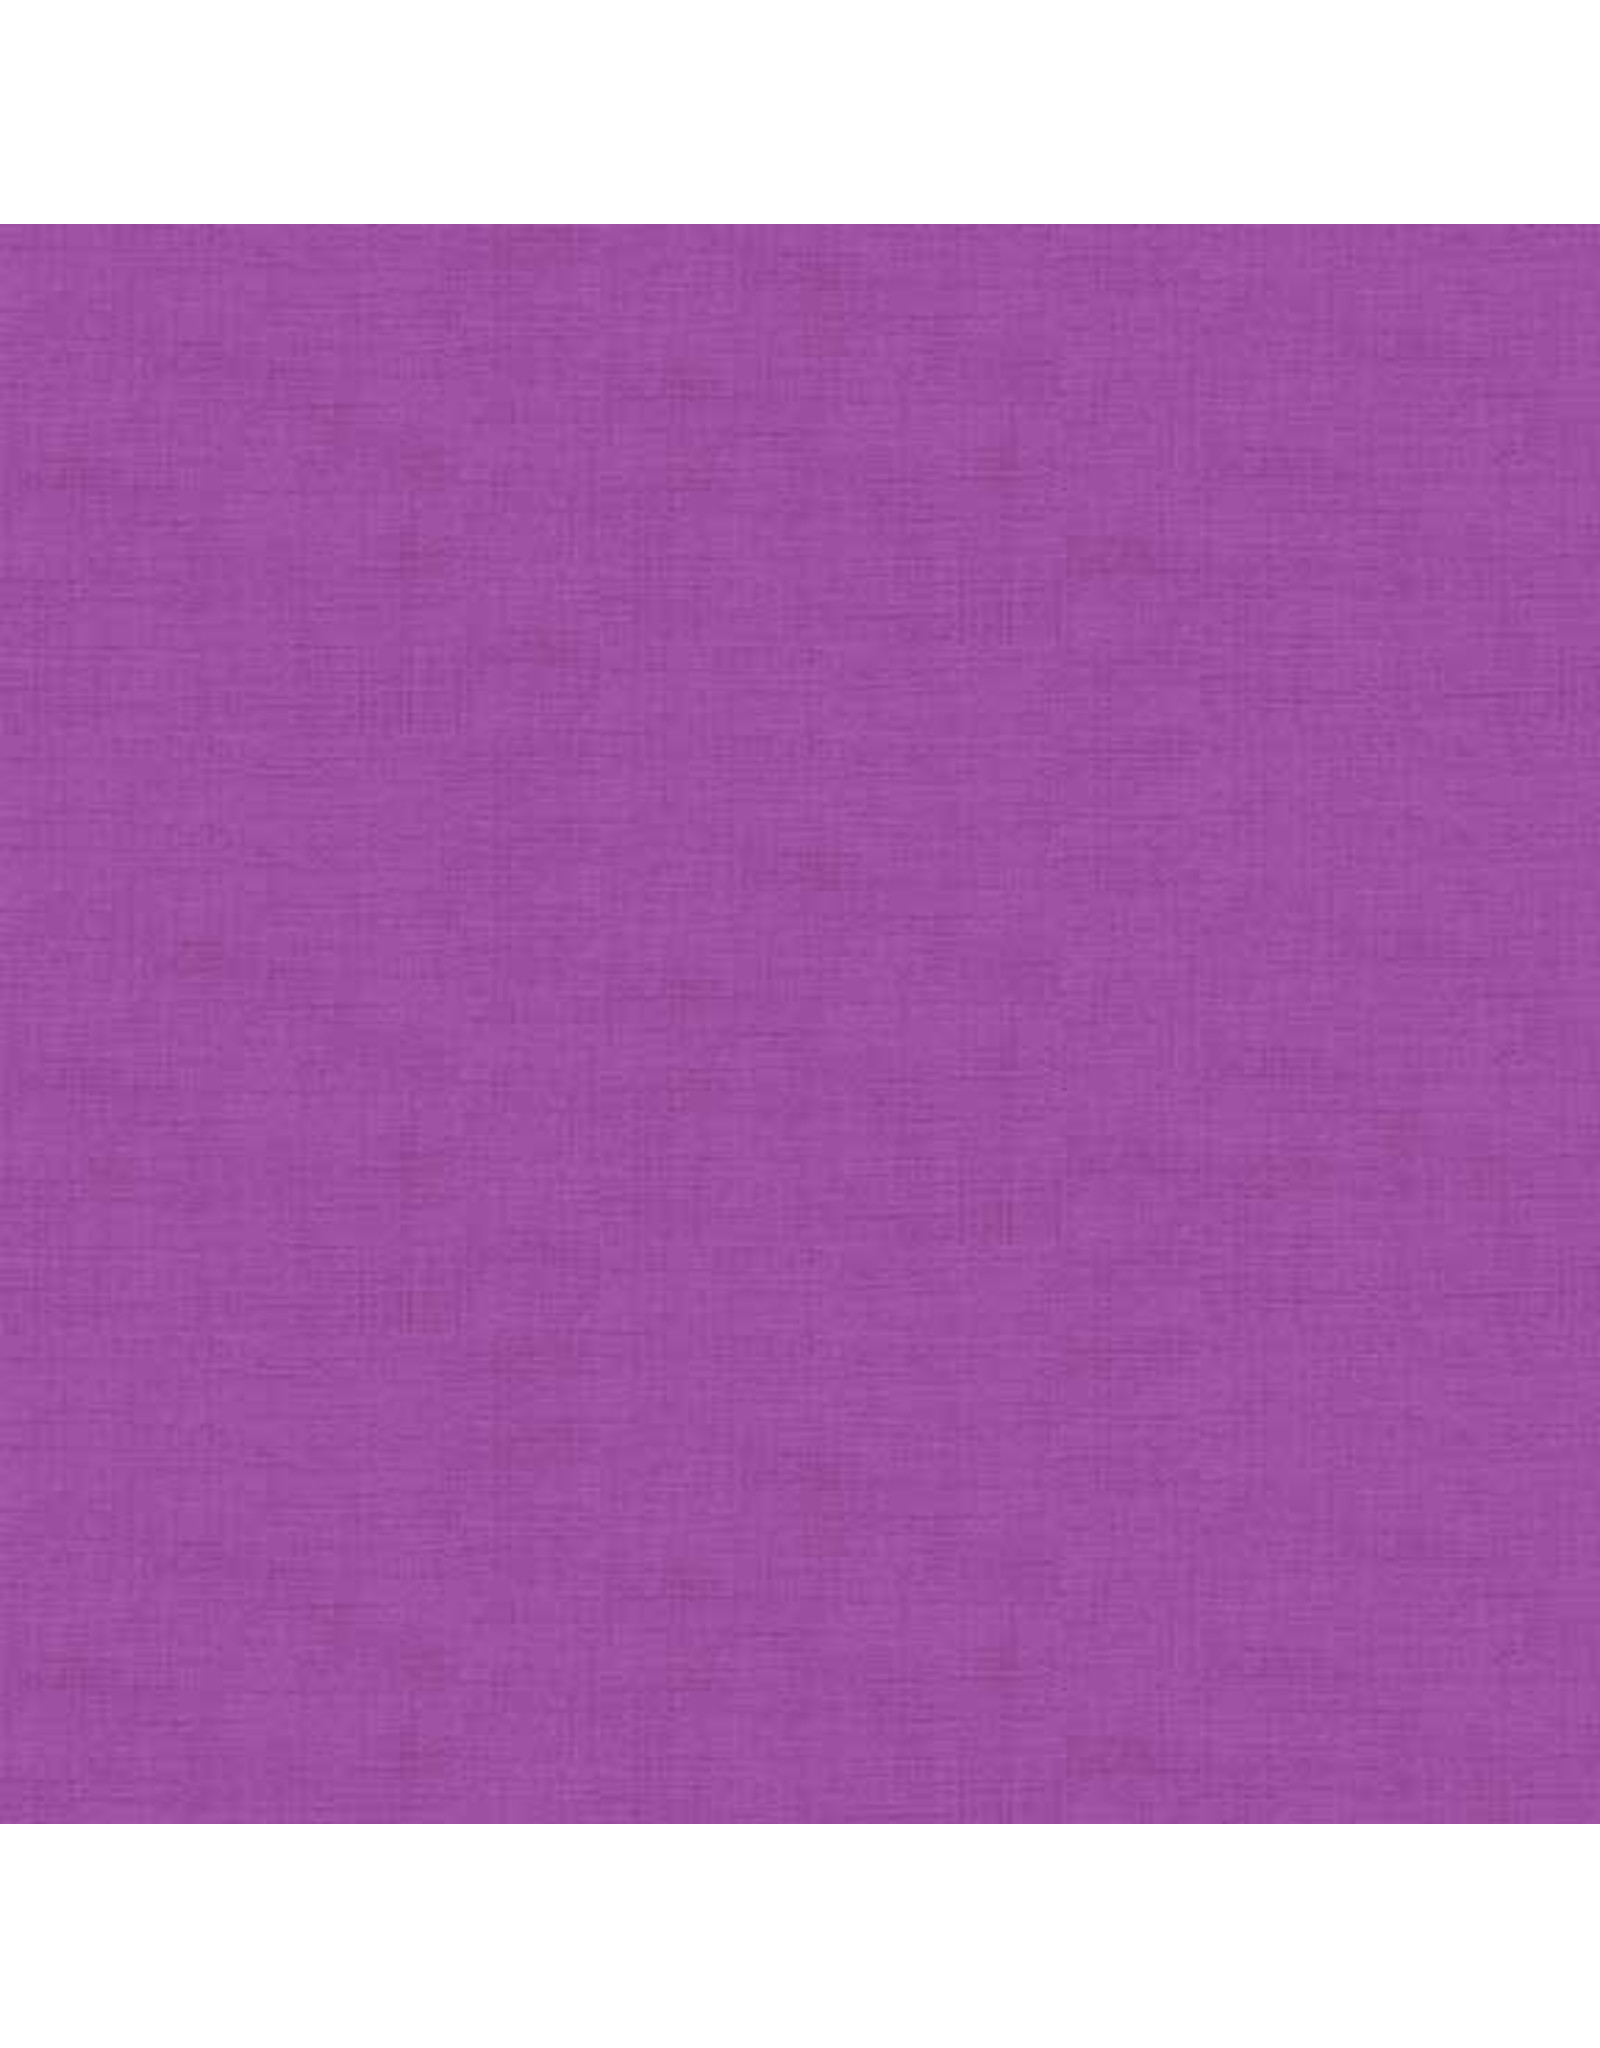 Makower UK Linen Texture - Hyacinth